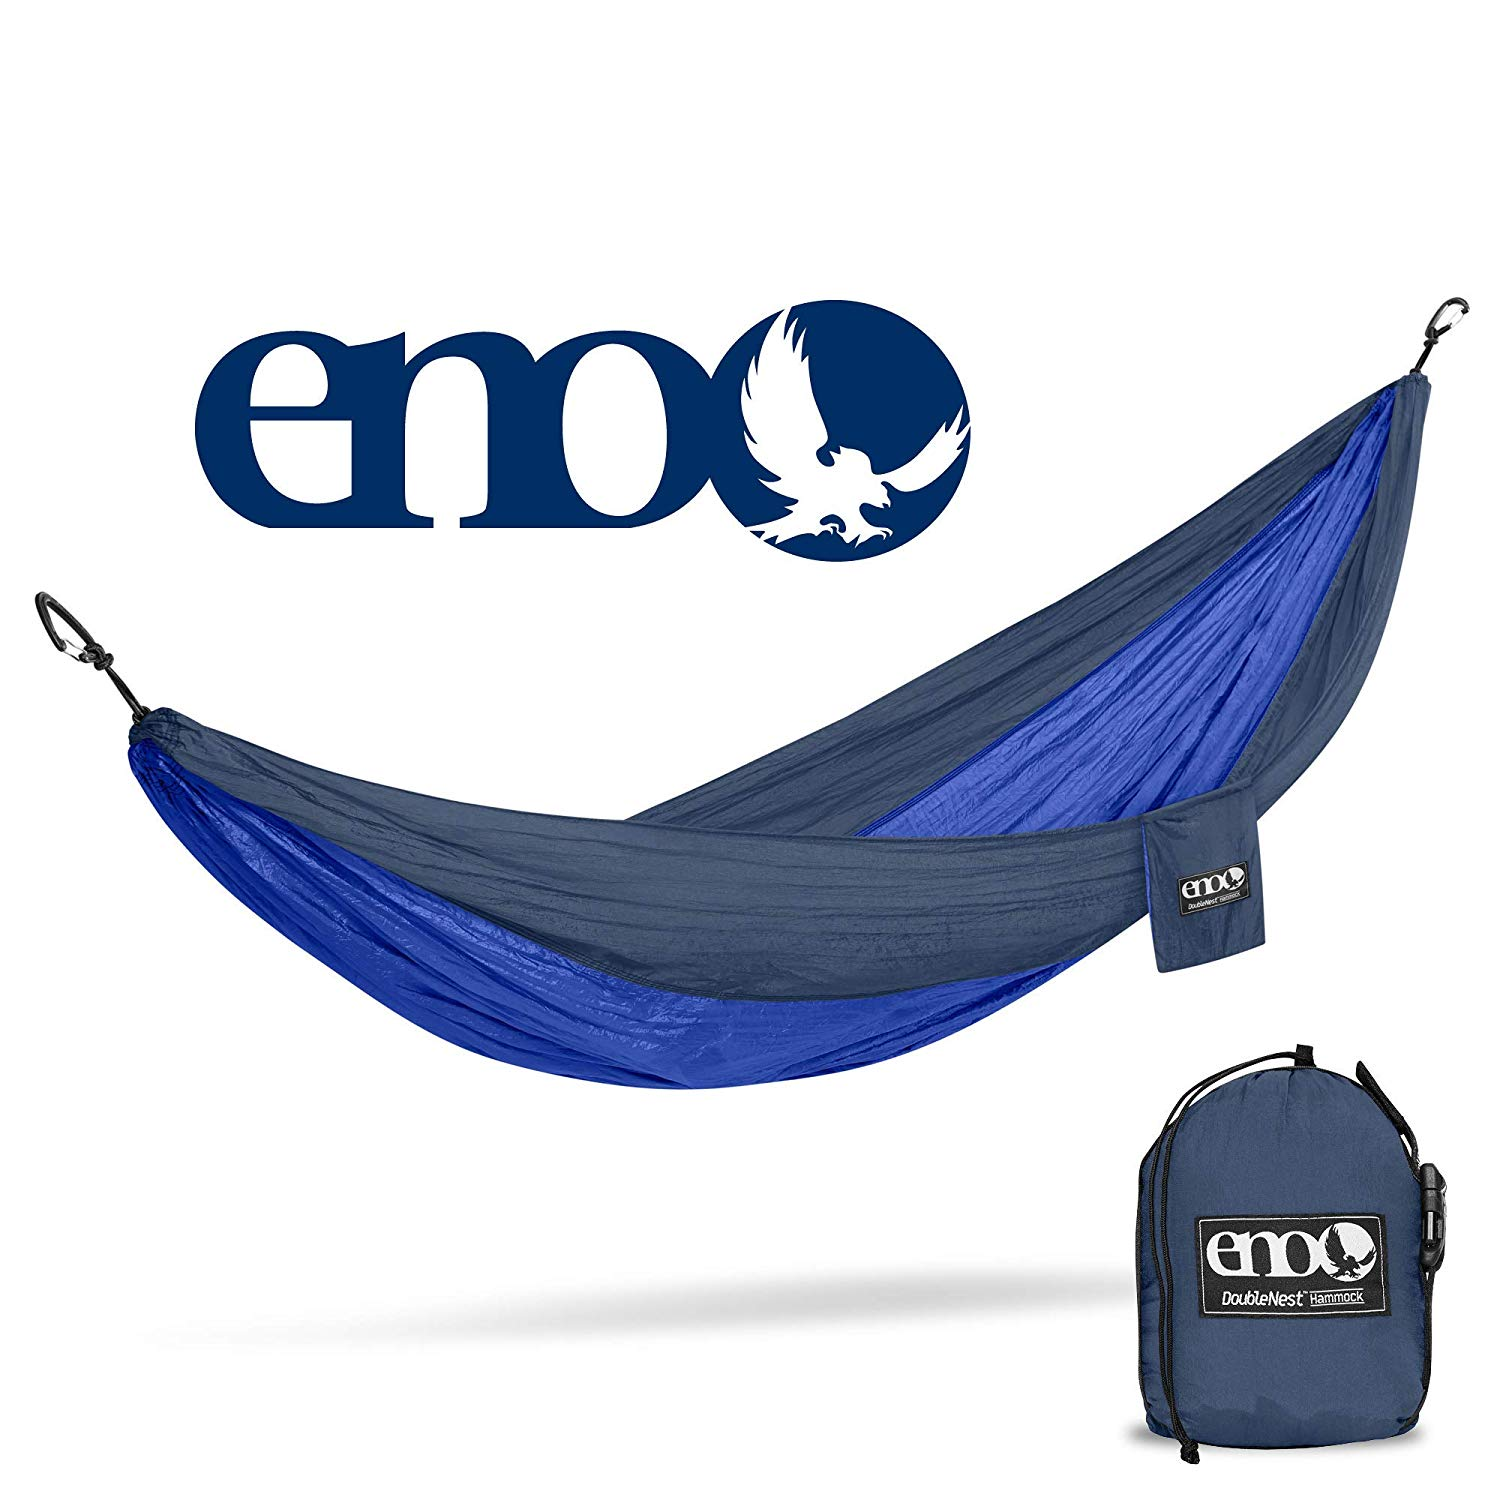 ENO Eagles Nest Outfitters - DoubleNest Hammock, Portable Hammock for Two